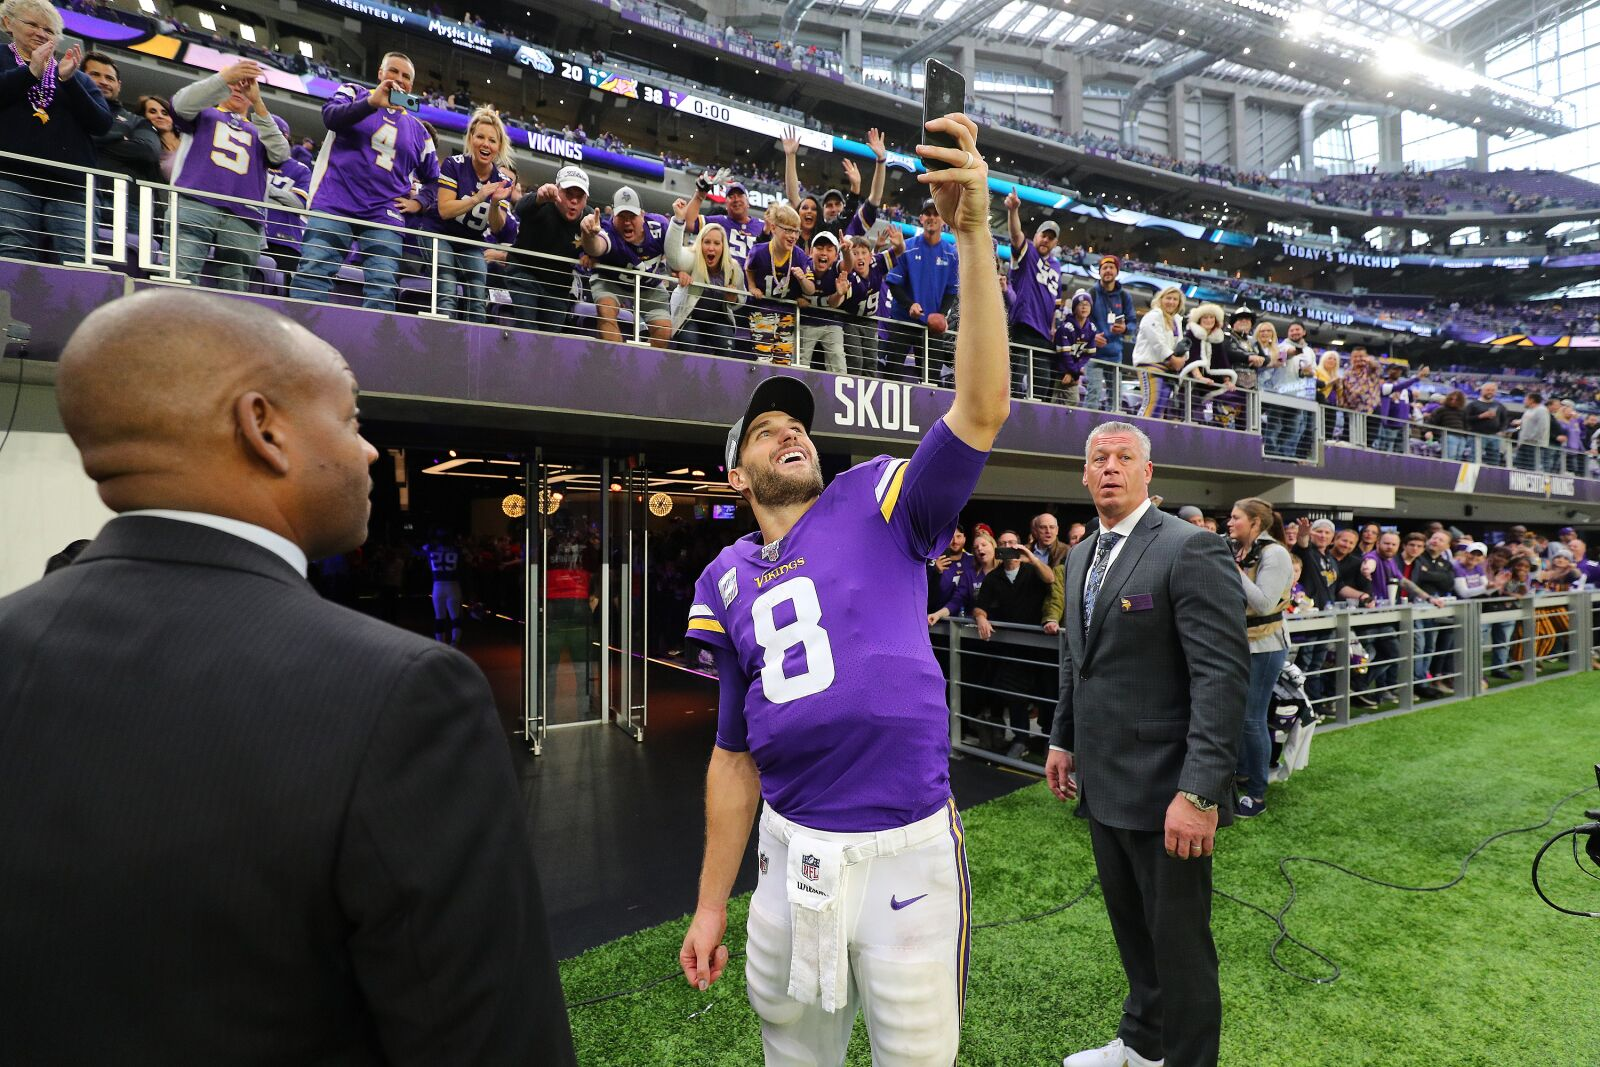 Vikings QB Kirk Cousins nominated for FedEx Air Player of the Week